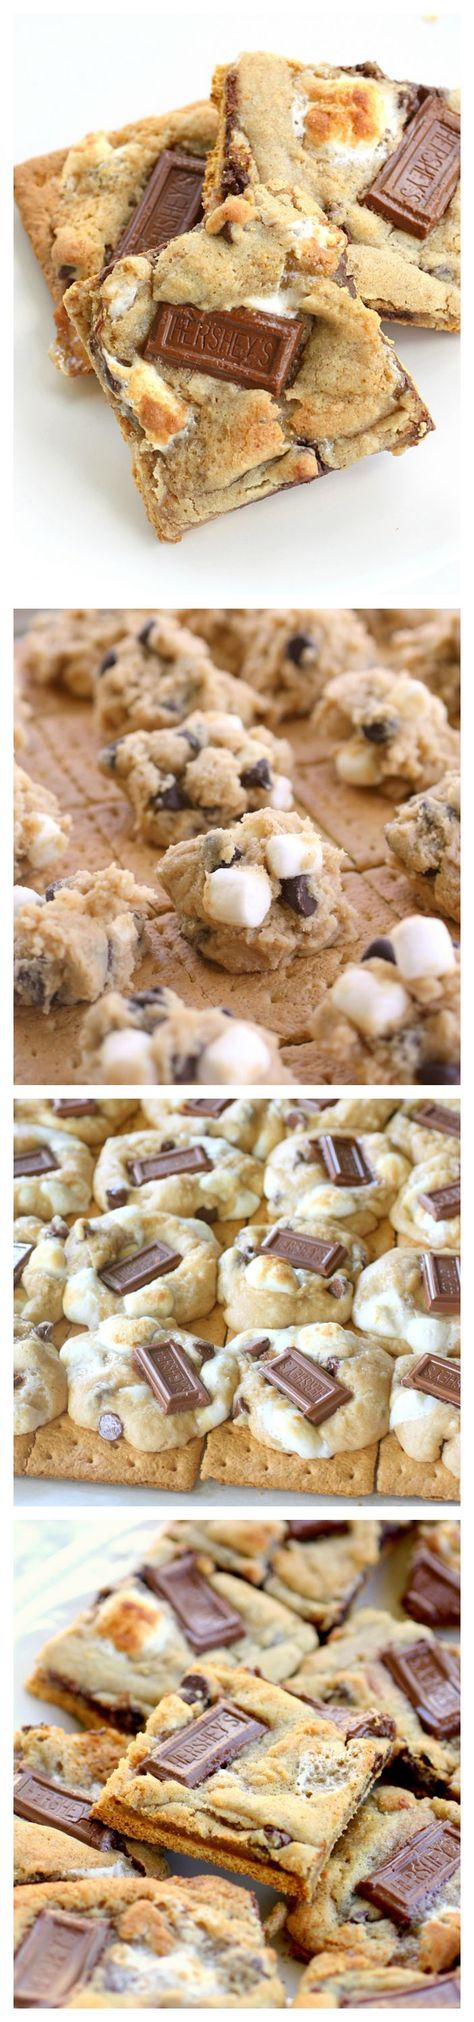 S'mores Cookies - graham crackers topped with chocolate chip marshmallow cookie dough and topped with Hershey squares. http://the-girl-who-ate-everything.com